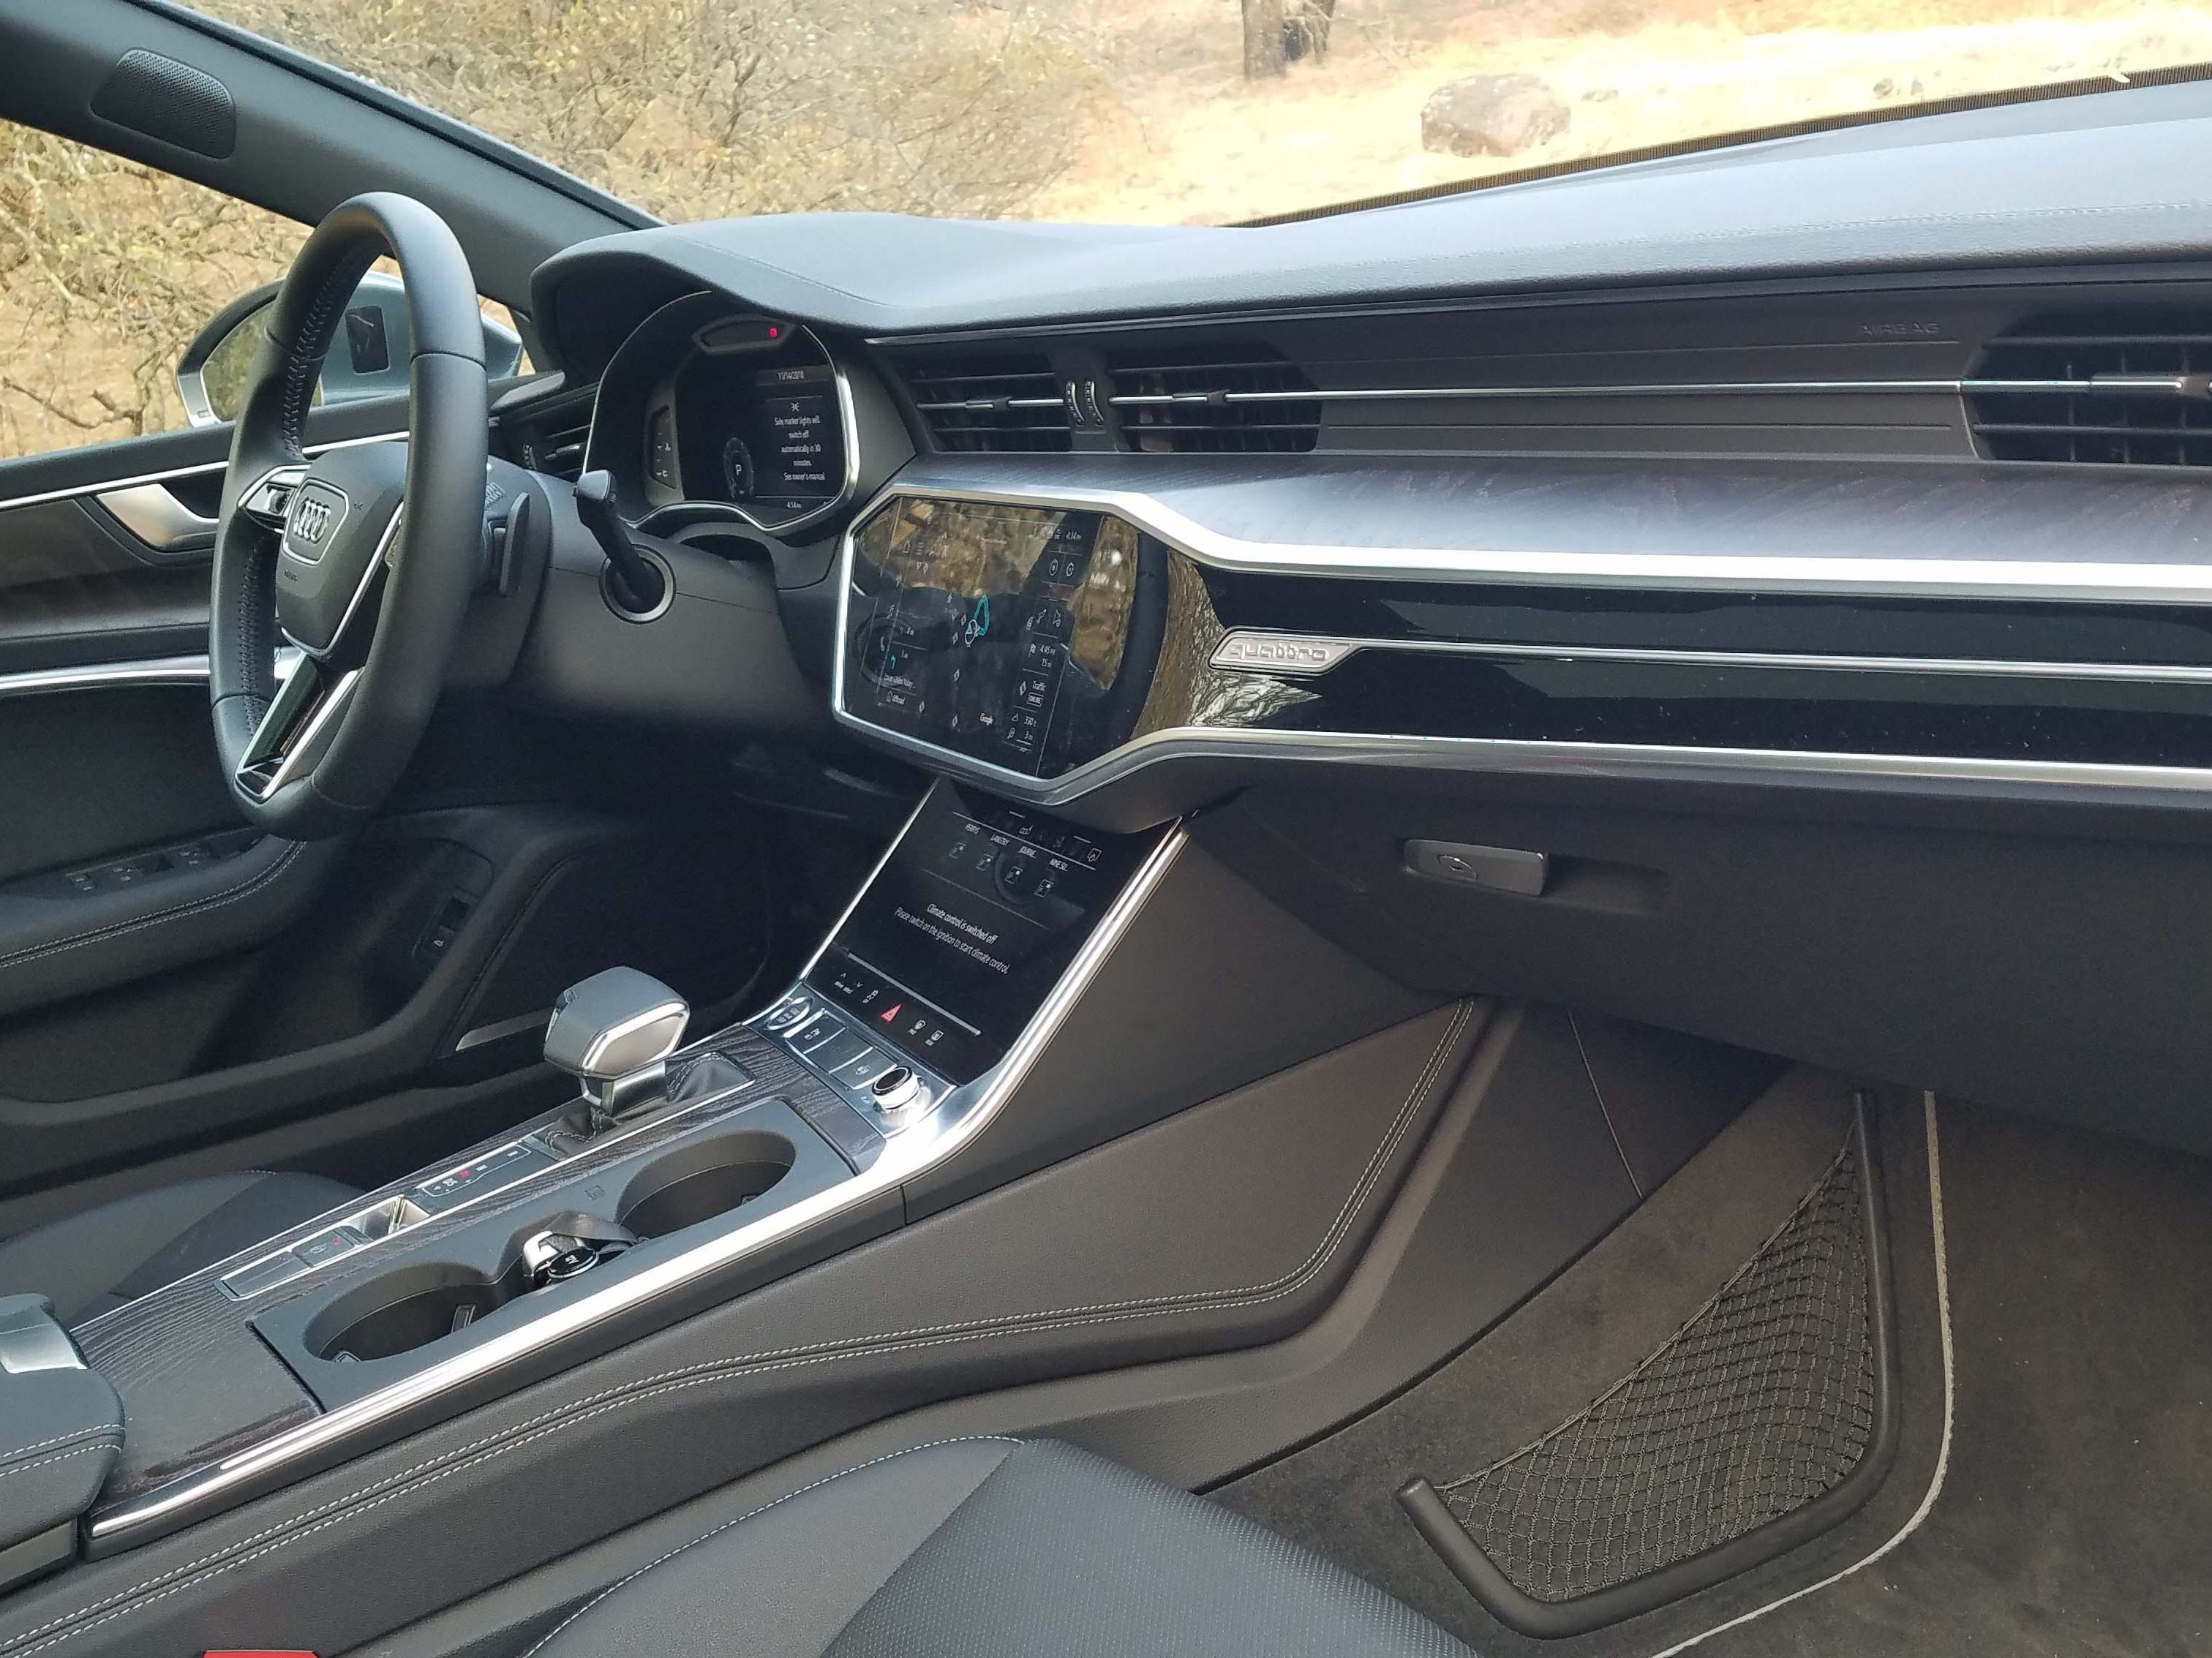 The interior of the 2019 Audi A7, shared with the Audi A6, is a dramatic departure from the previous generation with a guitar-like design dominating the dash and two touch screens where there used to be one.